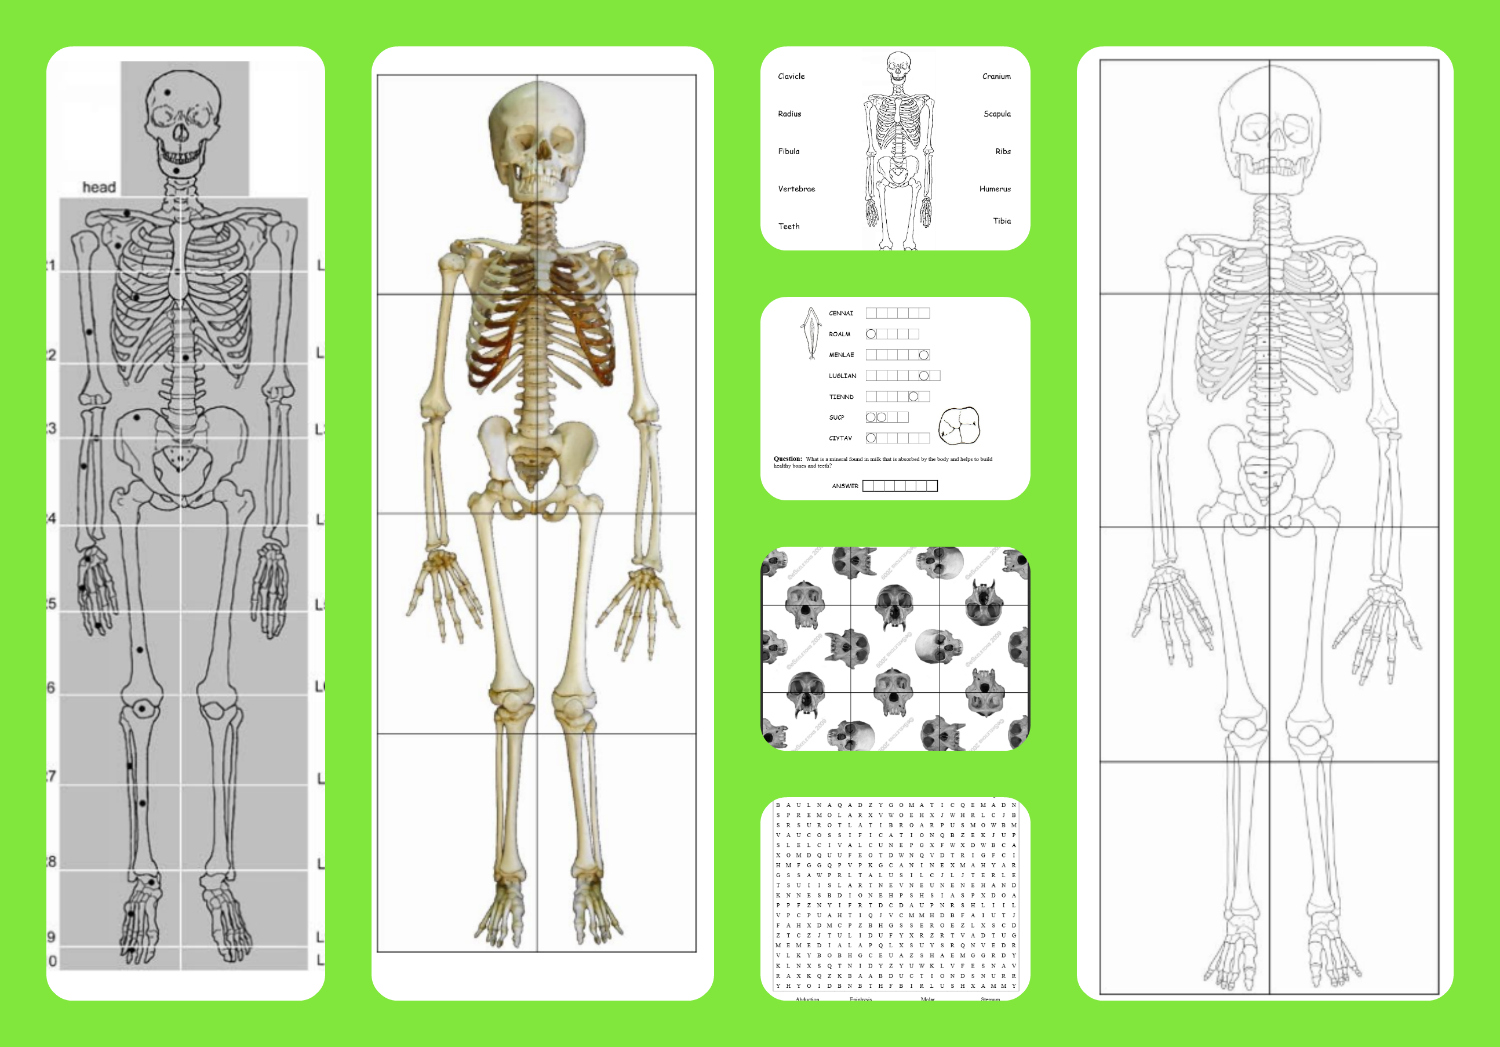 This is a picture of Life Size Printable Skeleton pertaining to grade 5